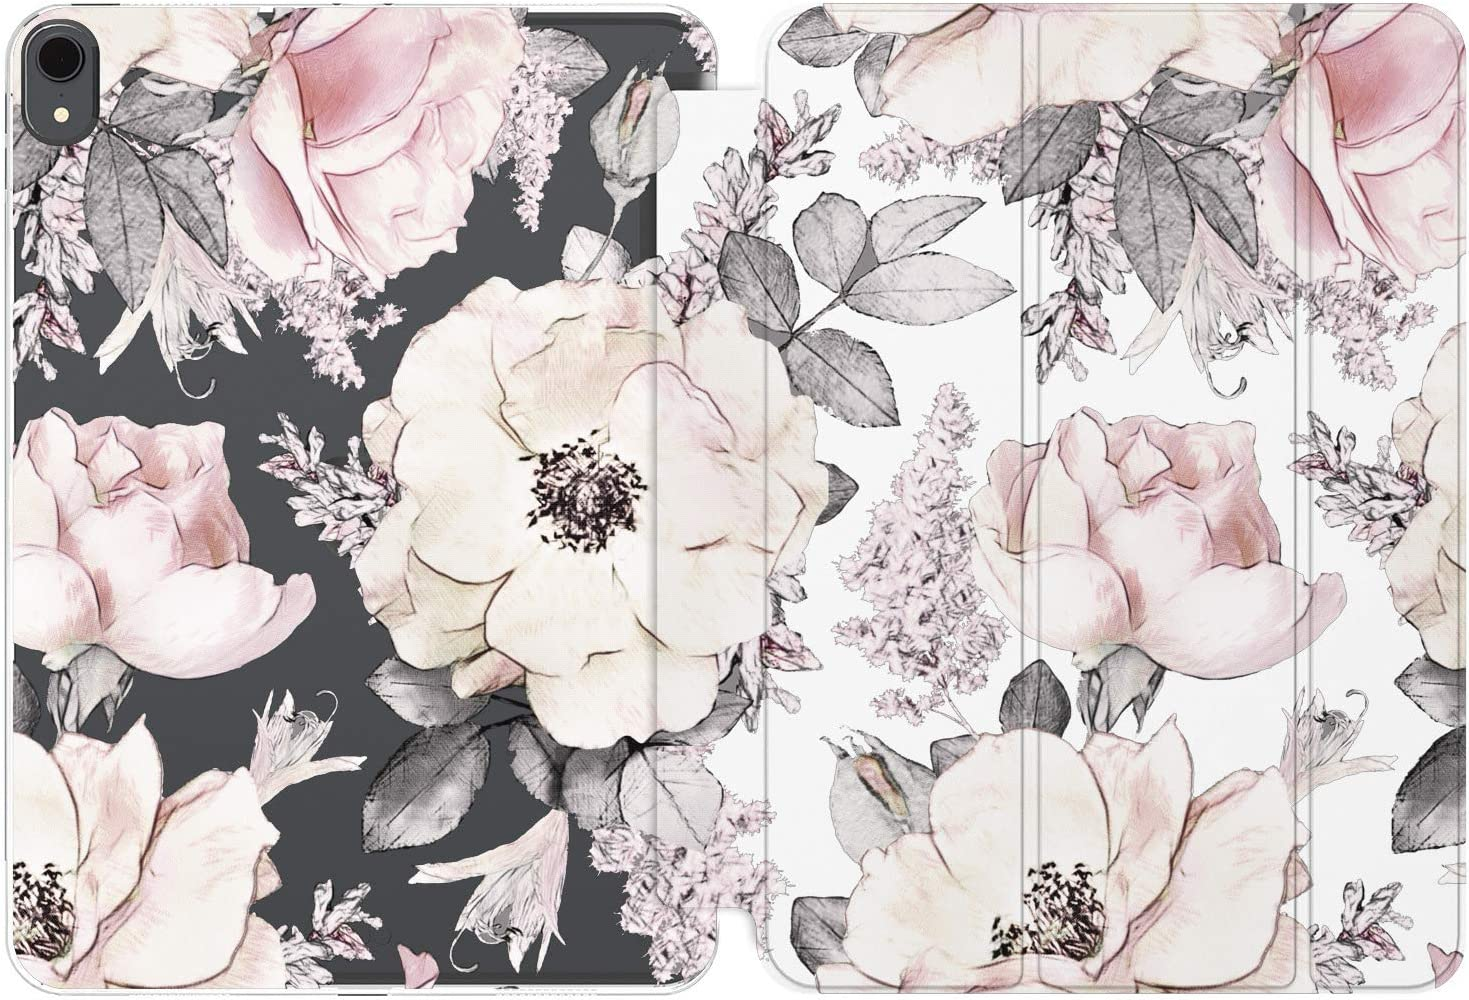 Cavka Case for Apple iPad Air 4th 2020 Gen 3th 10.2 12.9 Pro 11 10.5 9.7 Mini 5 4 3 2 1 Floral Protective Watercolor Leaf Pink Smart Cover Auto Wake Sleep Leaves Flower Roses Peony Grey